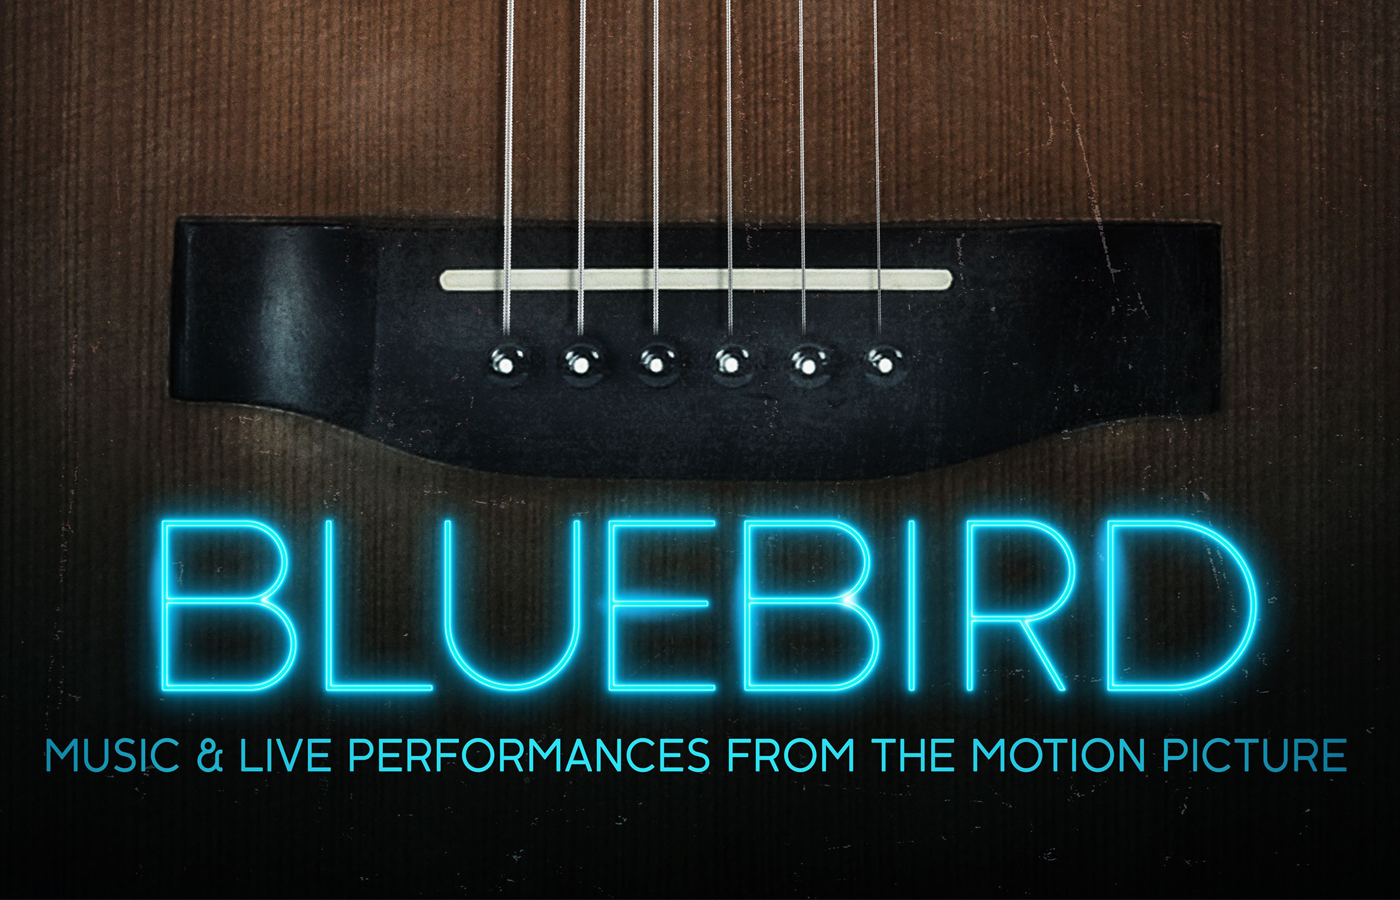 Bluebird at Pathé Arena